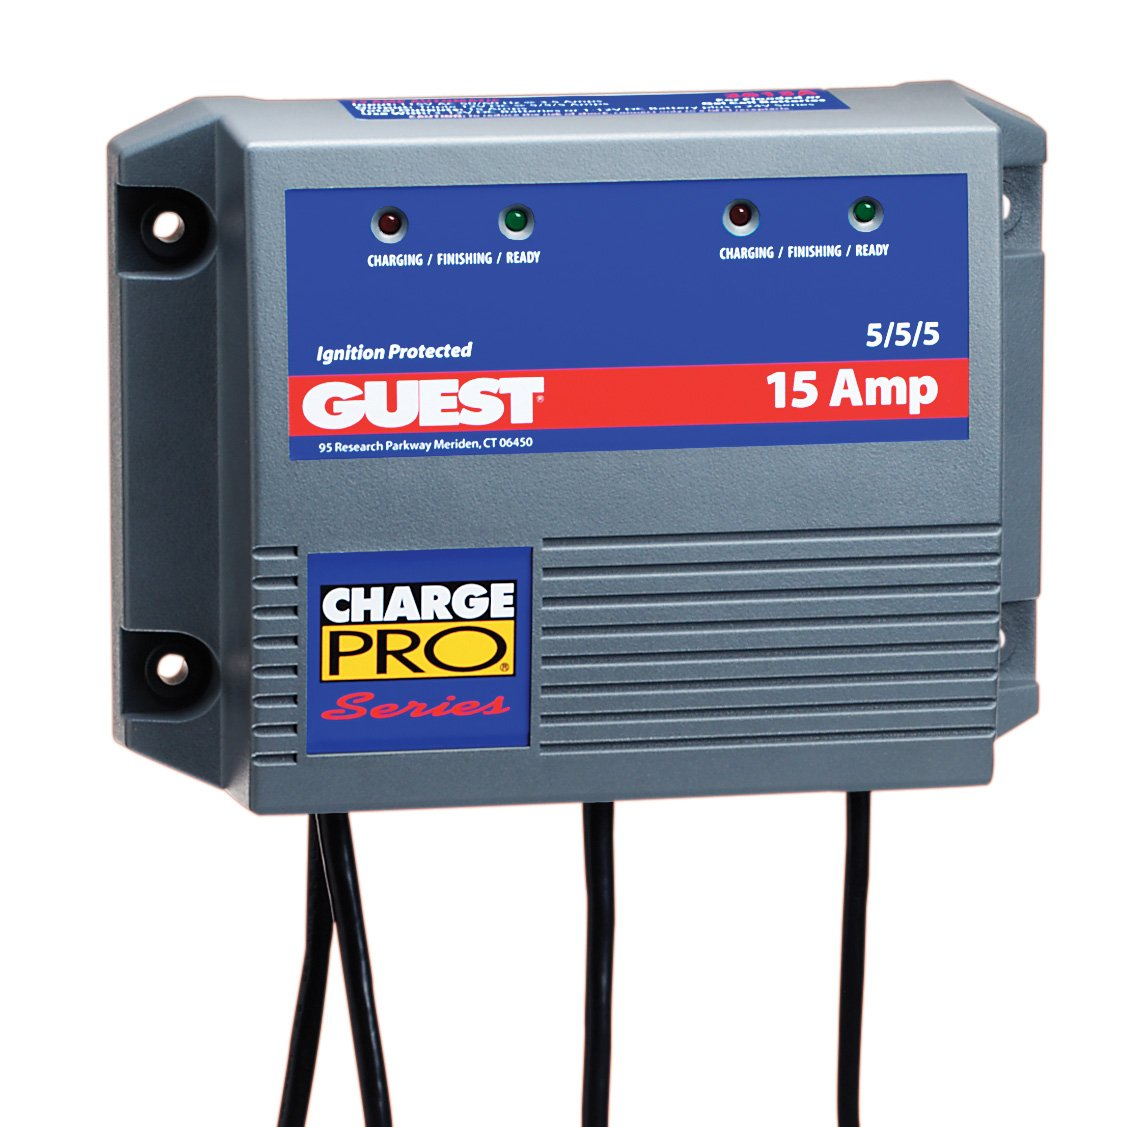 15 amp triple output charge pro battery charger 15a 5 5 5 12 24 24 volt trolling motor diagram 3 bank charger wiring diagram [ 1142 x 1127 Pixel ]